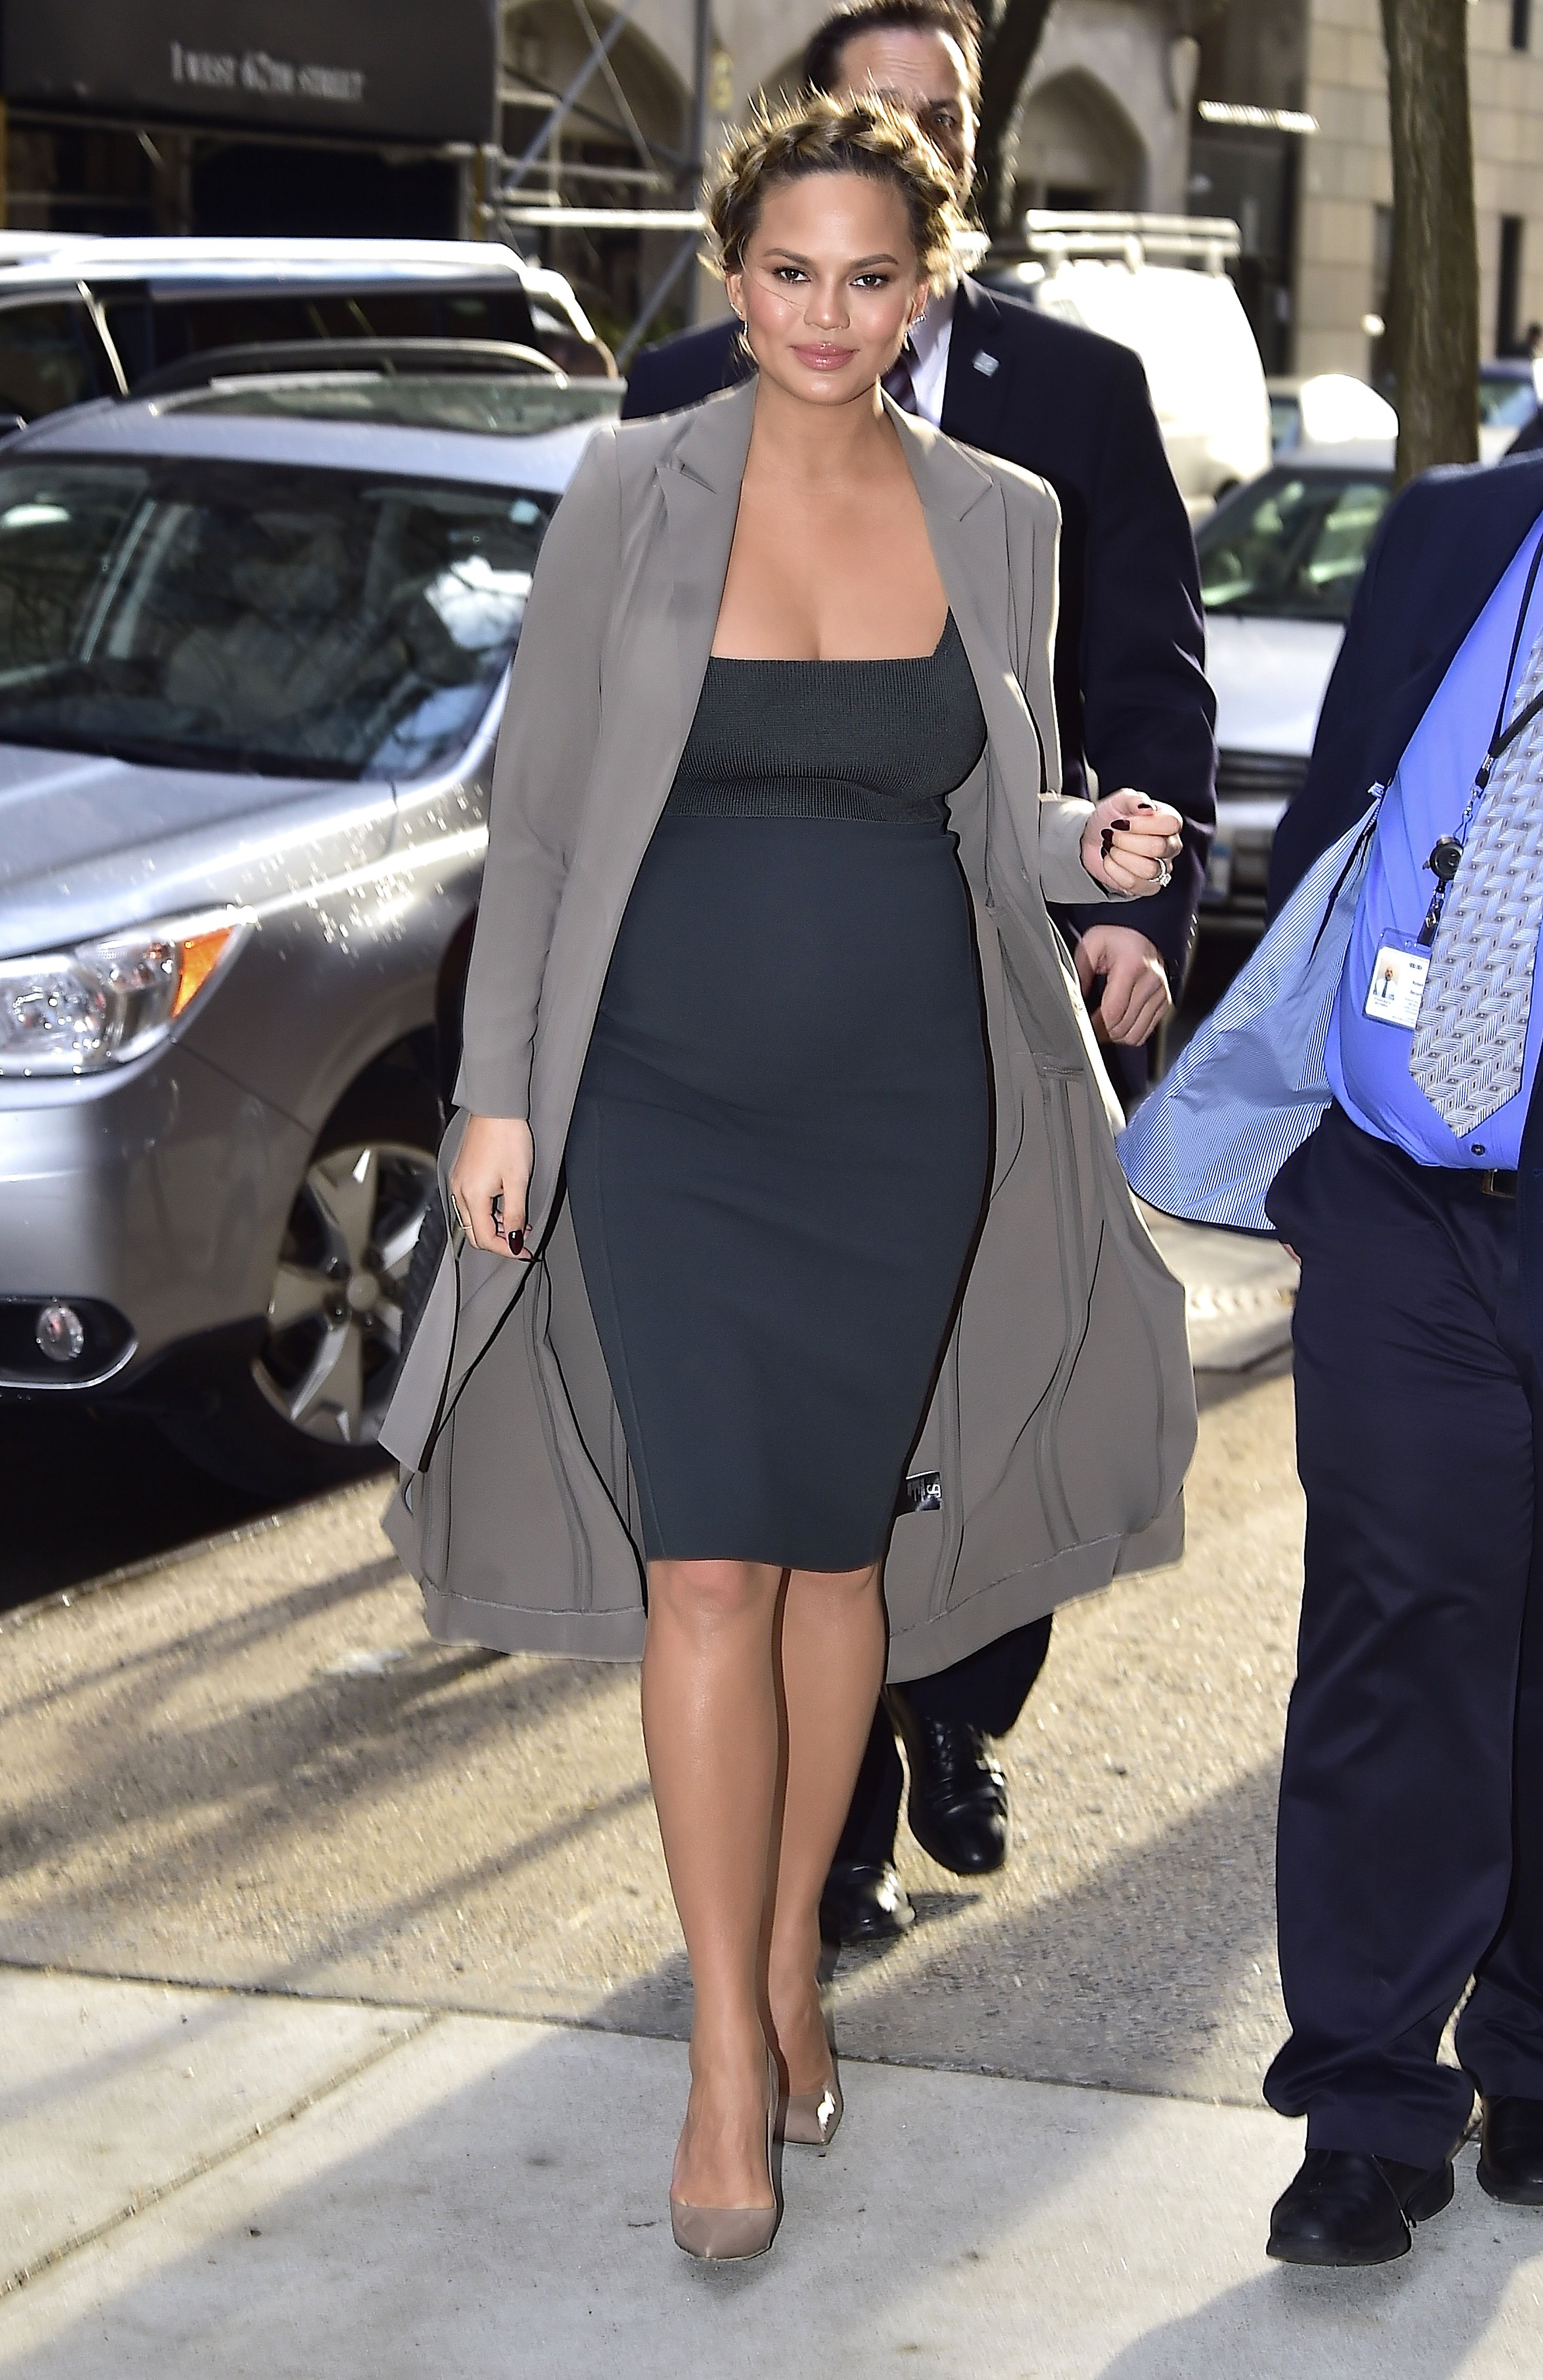 d3aa02b7e Pregnant Chrissy Teigen sports three outfits while promoting cookbook